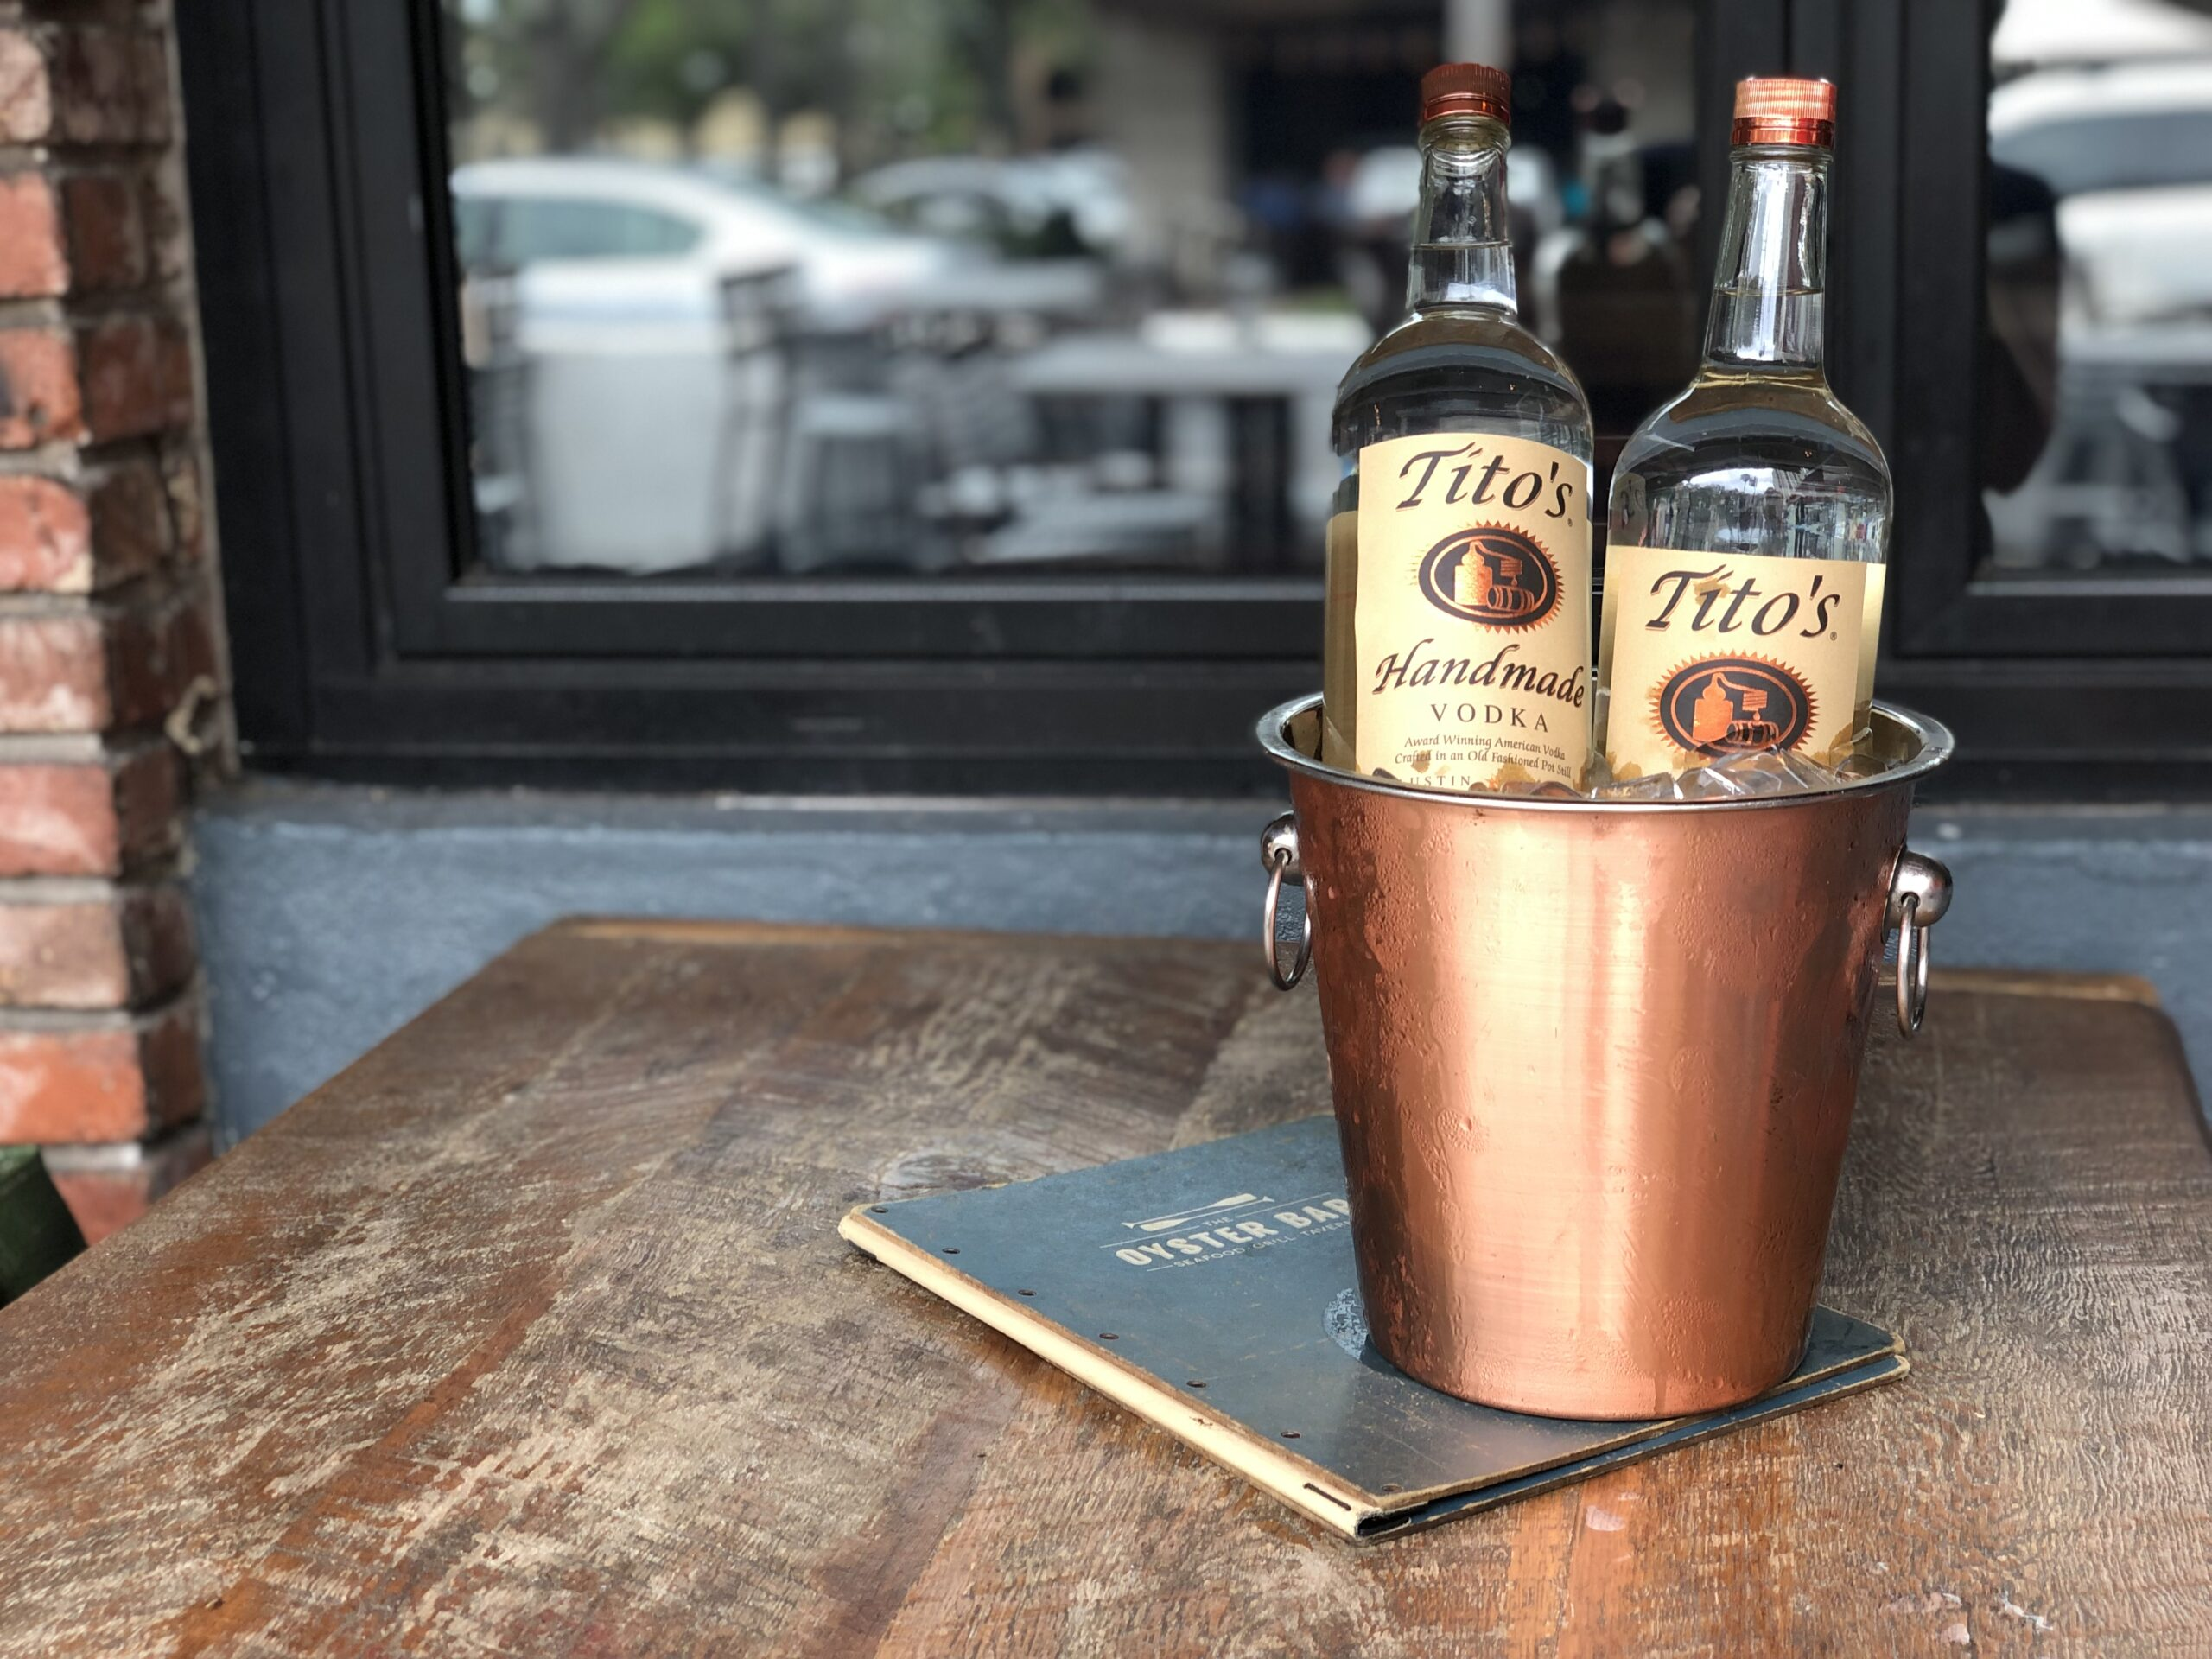 NEW TUESDAY OYSTER BAR DRINK SPECIAL: $5 TITO'S VODKA